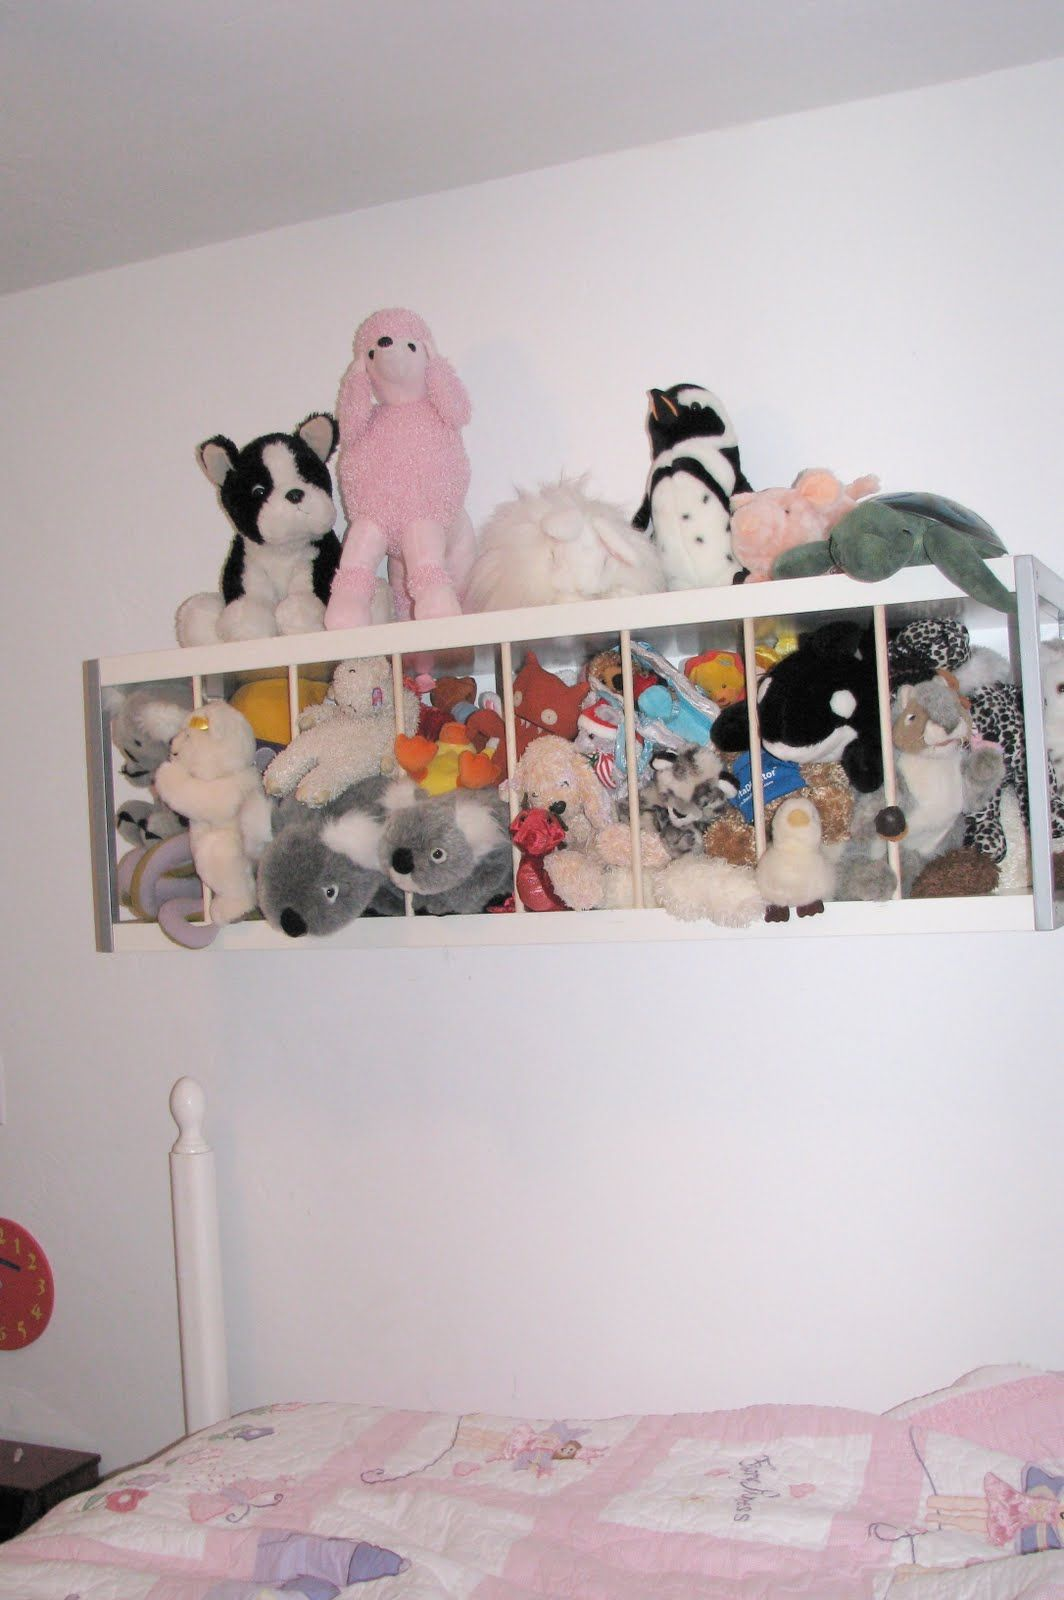 Ikea Hackers  Stuffed Animal Storage  Pinterest  Easy storage, Storage and Storage ideas